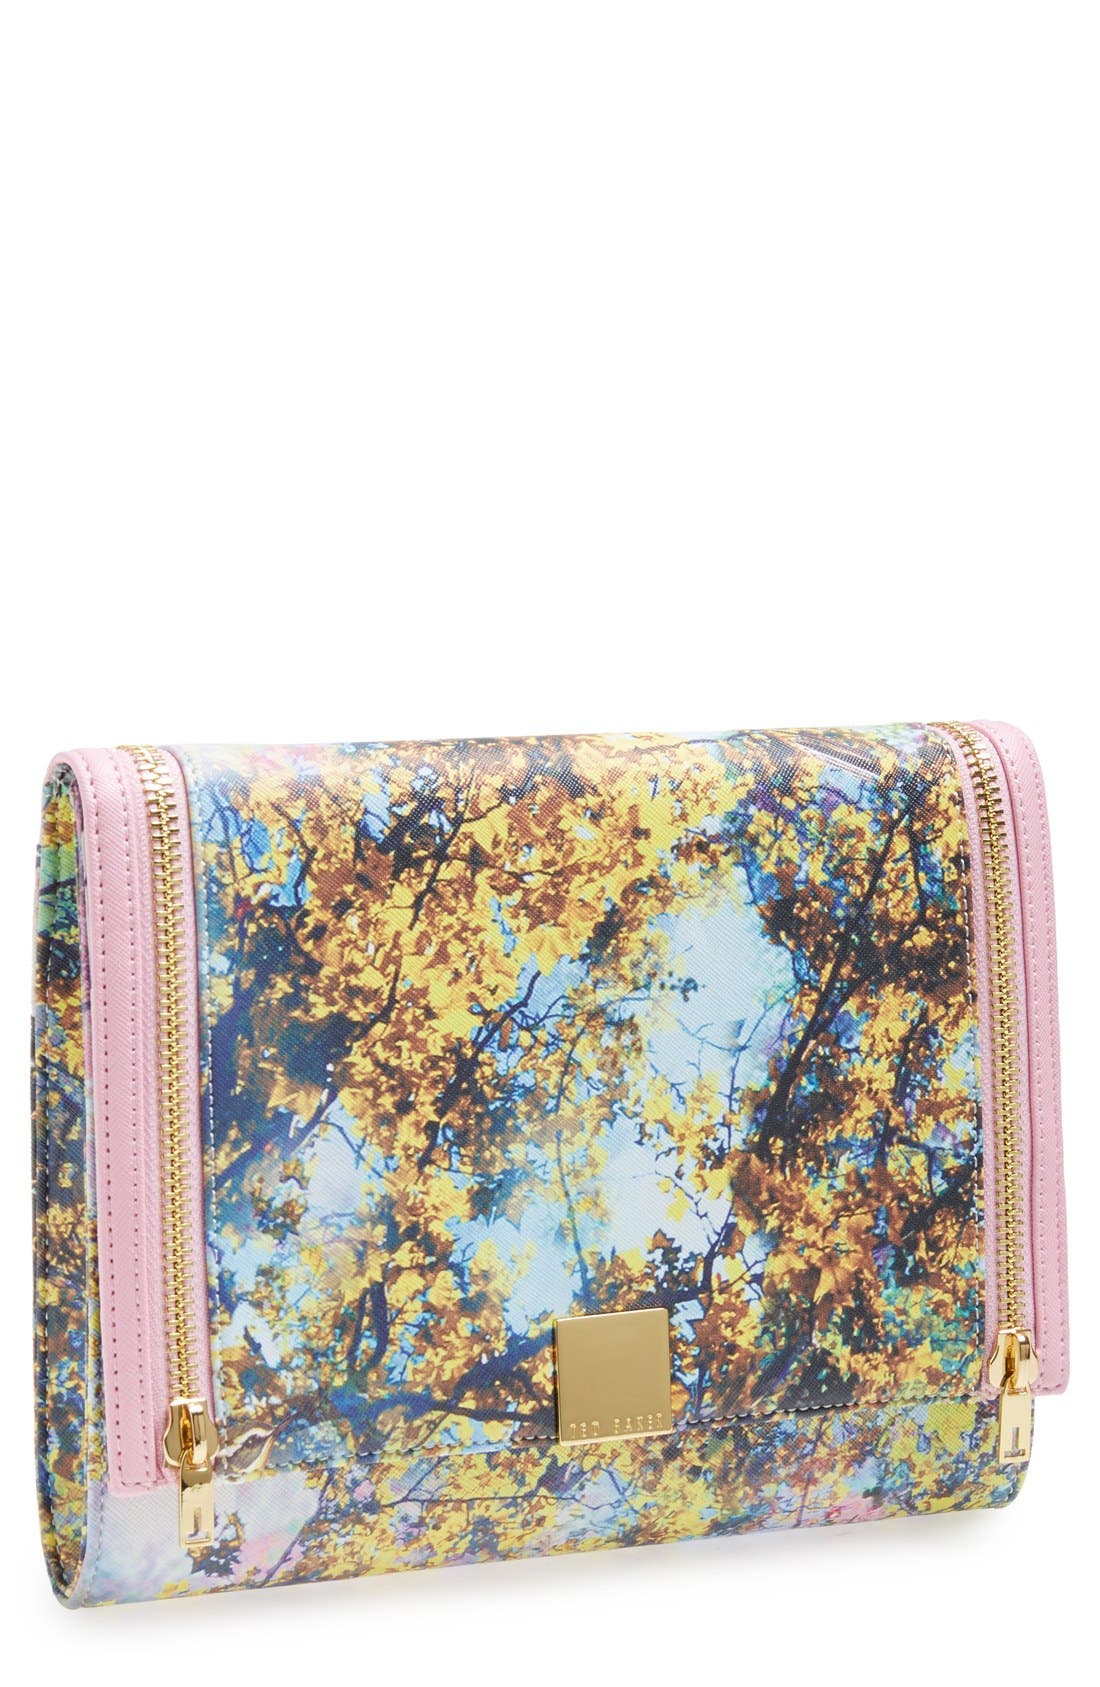 Alternate Image 1 Selected - Ted Baker London 'Pretty Trees' Print Flap Clutch